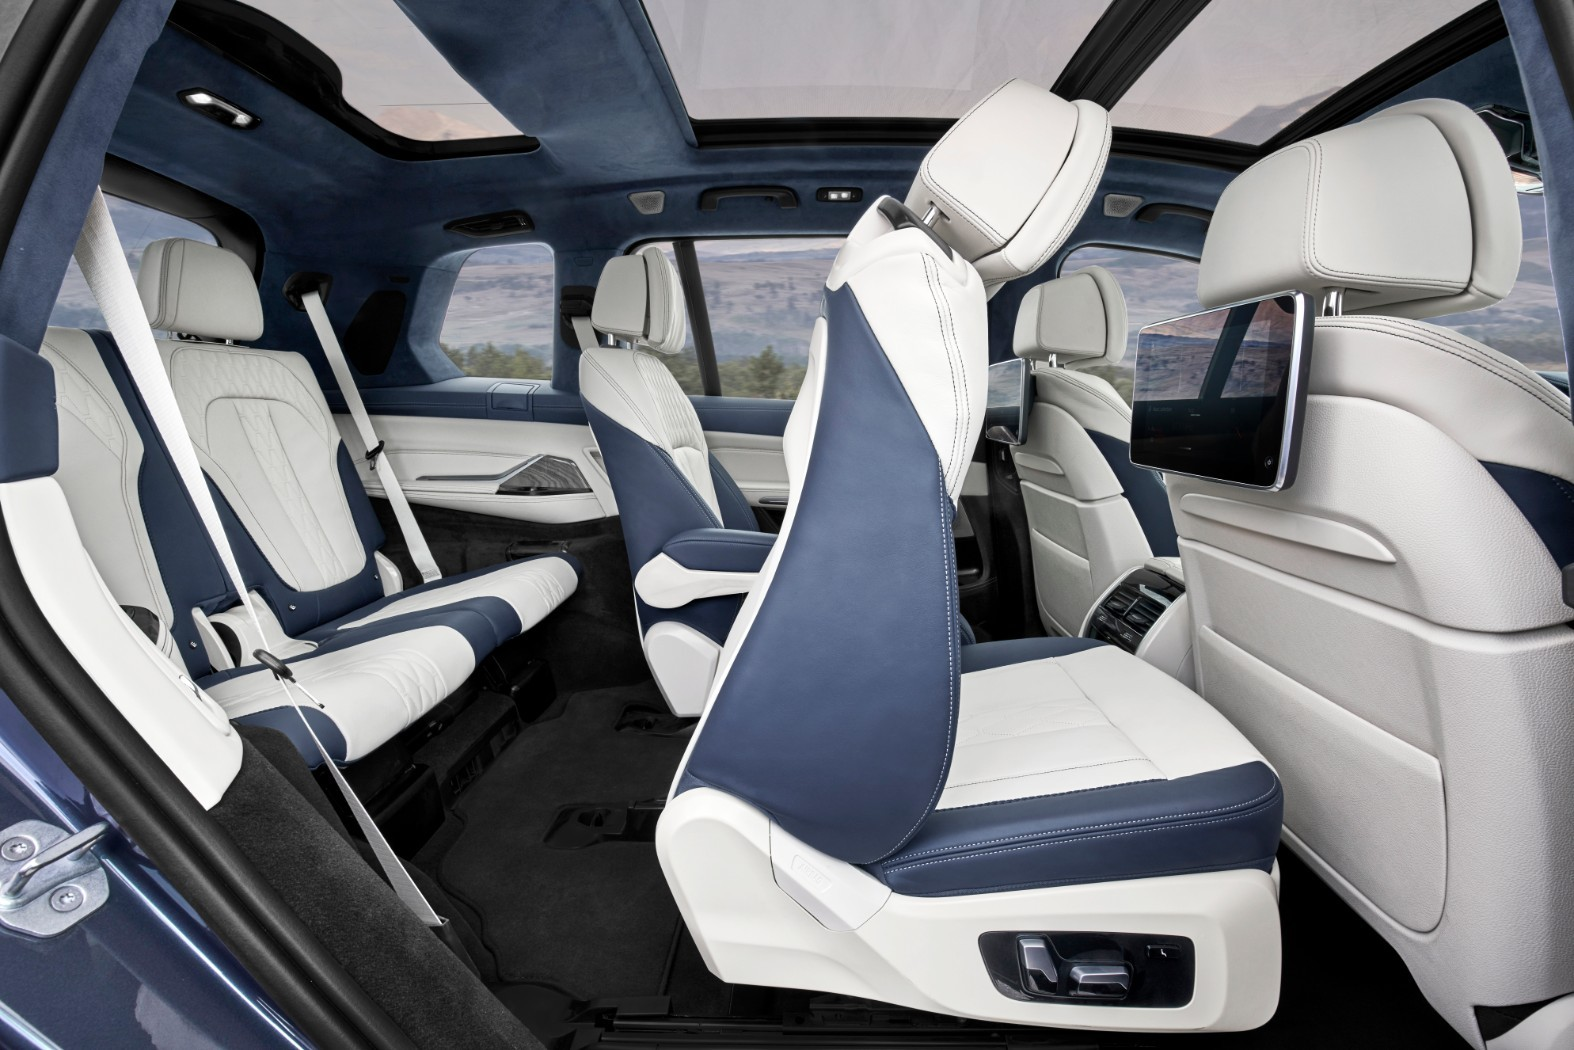 2020 Bmw X7 G07 Goes Official With 7 Seats And Gigantic